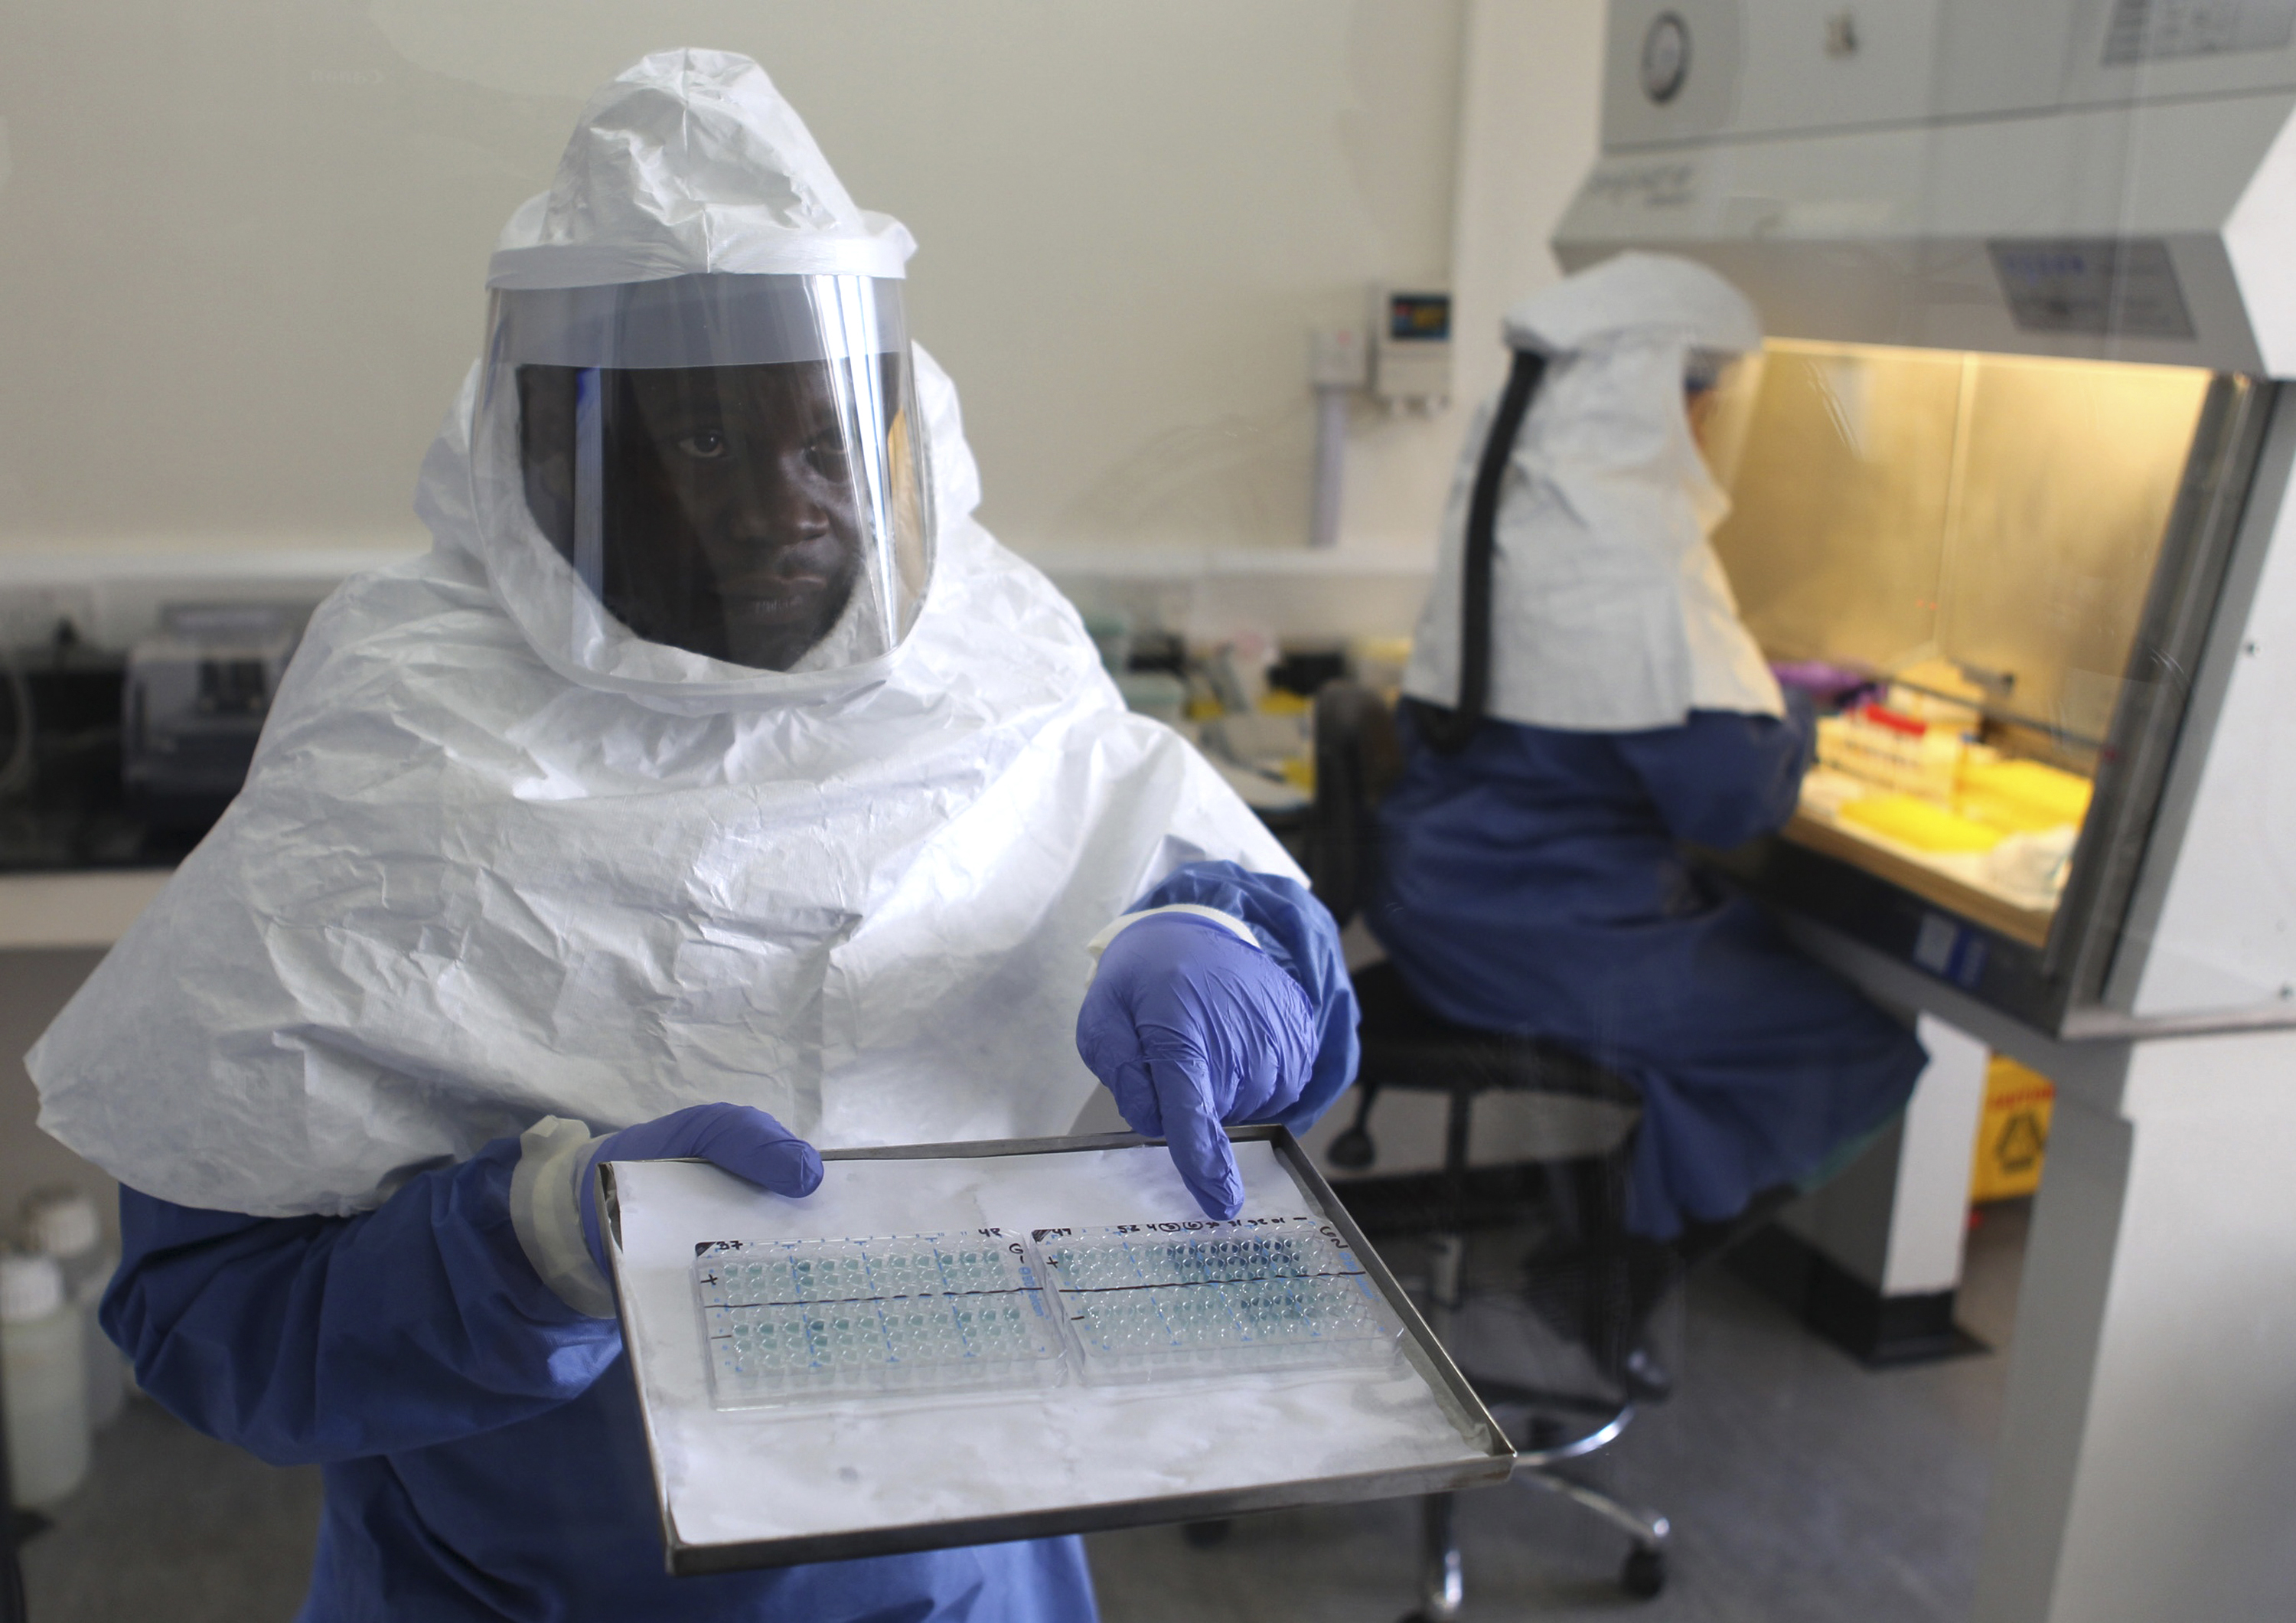 A doctor displays collected samples of the Ebola virus at the Centre for Disease Control in Entebbe, about 37km (23 miles) southwest of Uganda's capital Kampala, August 2, 2012.